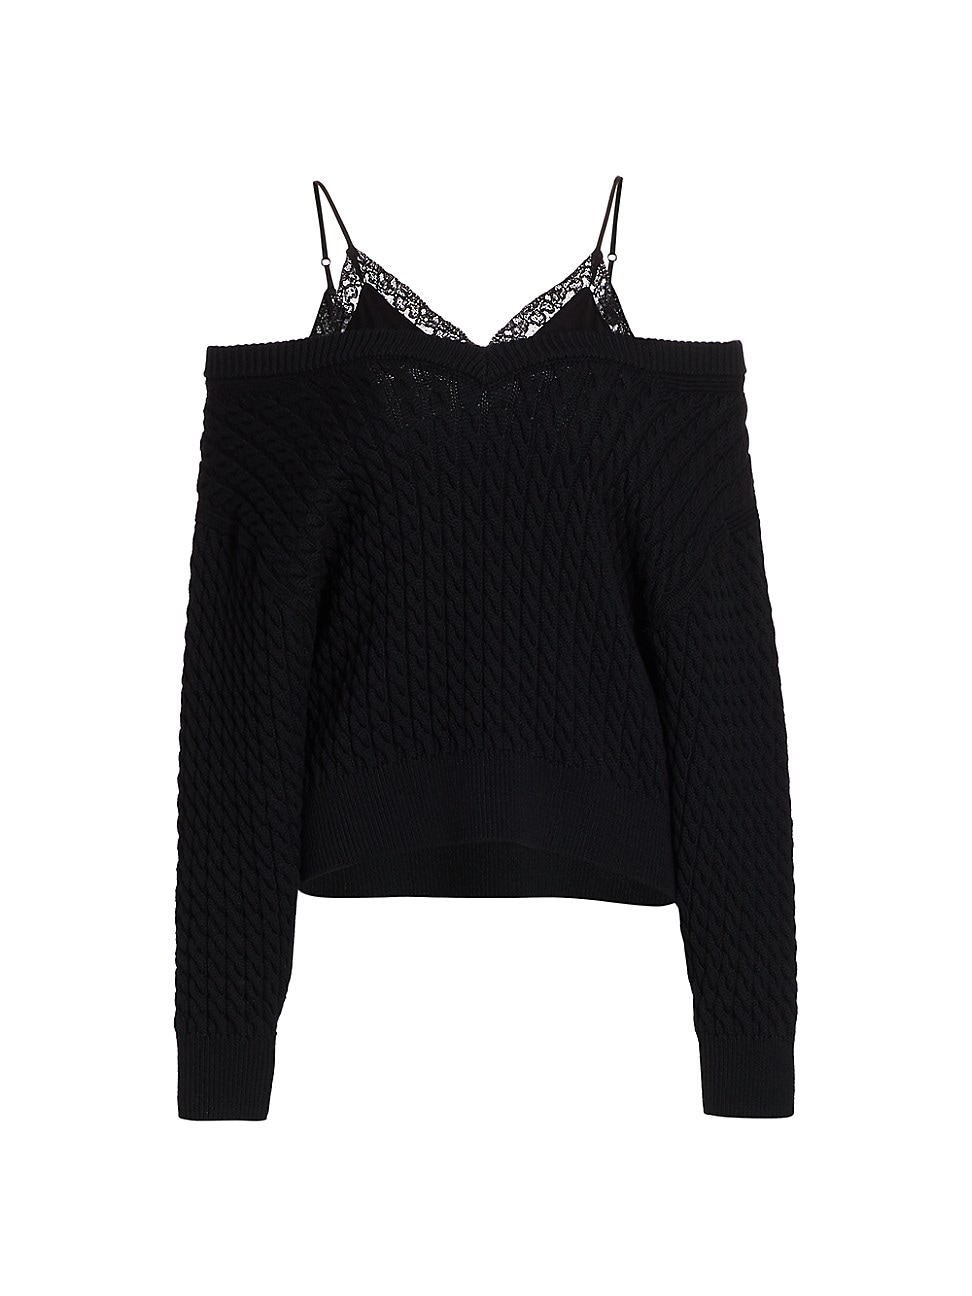 Alexander Wang T WOMEN'S BI-LAYER V-NECK CABLE PULLOVER WITH SATIN CAMISOLE - BLACK - SIZE LARGE